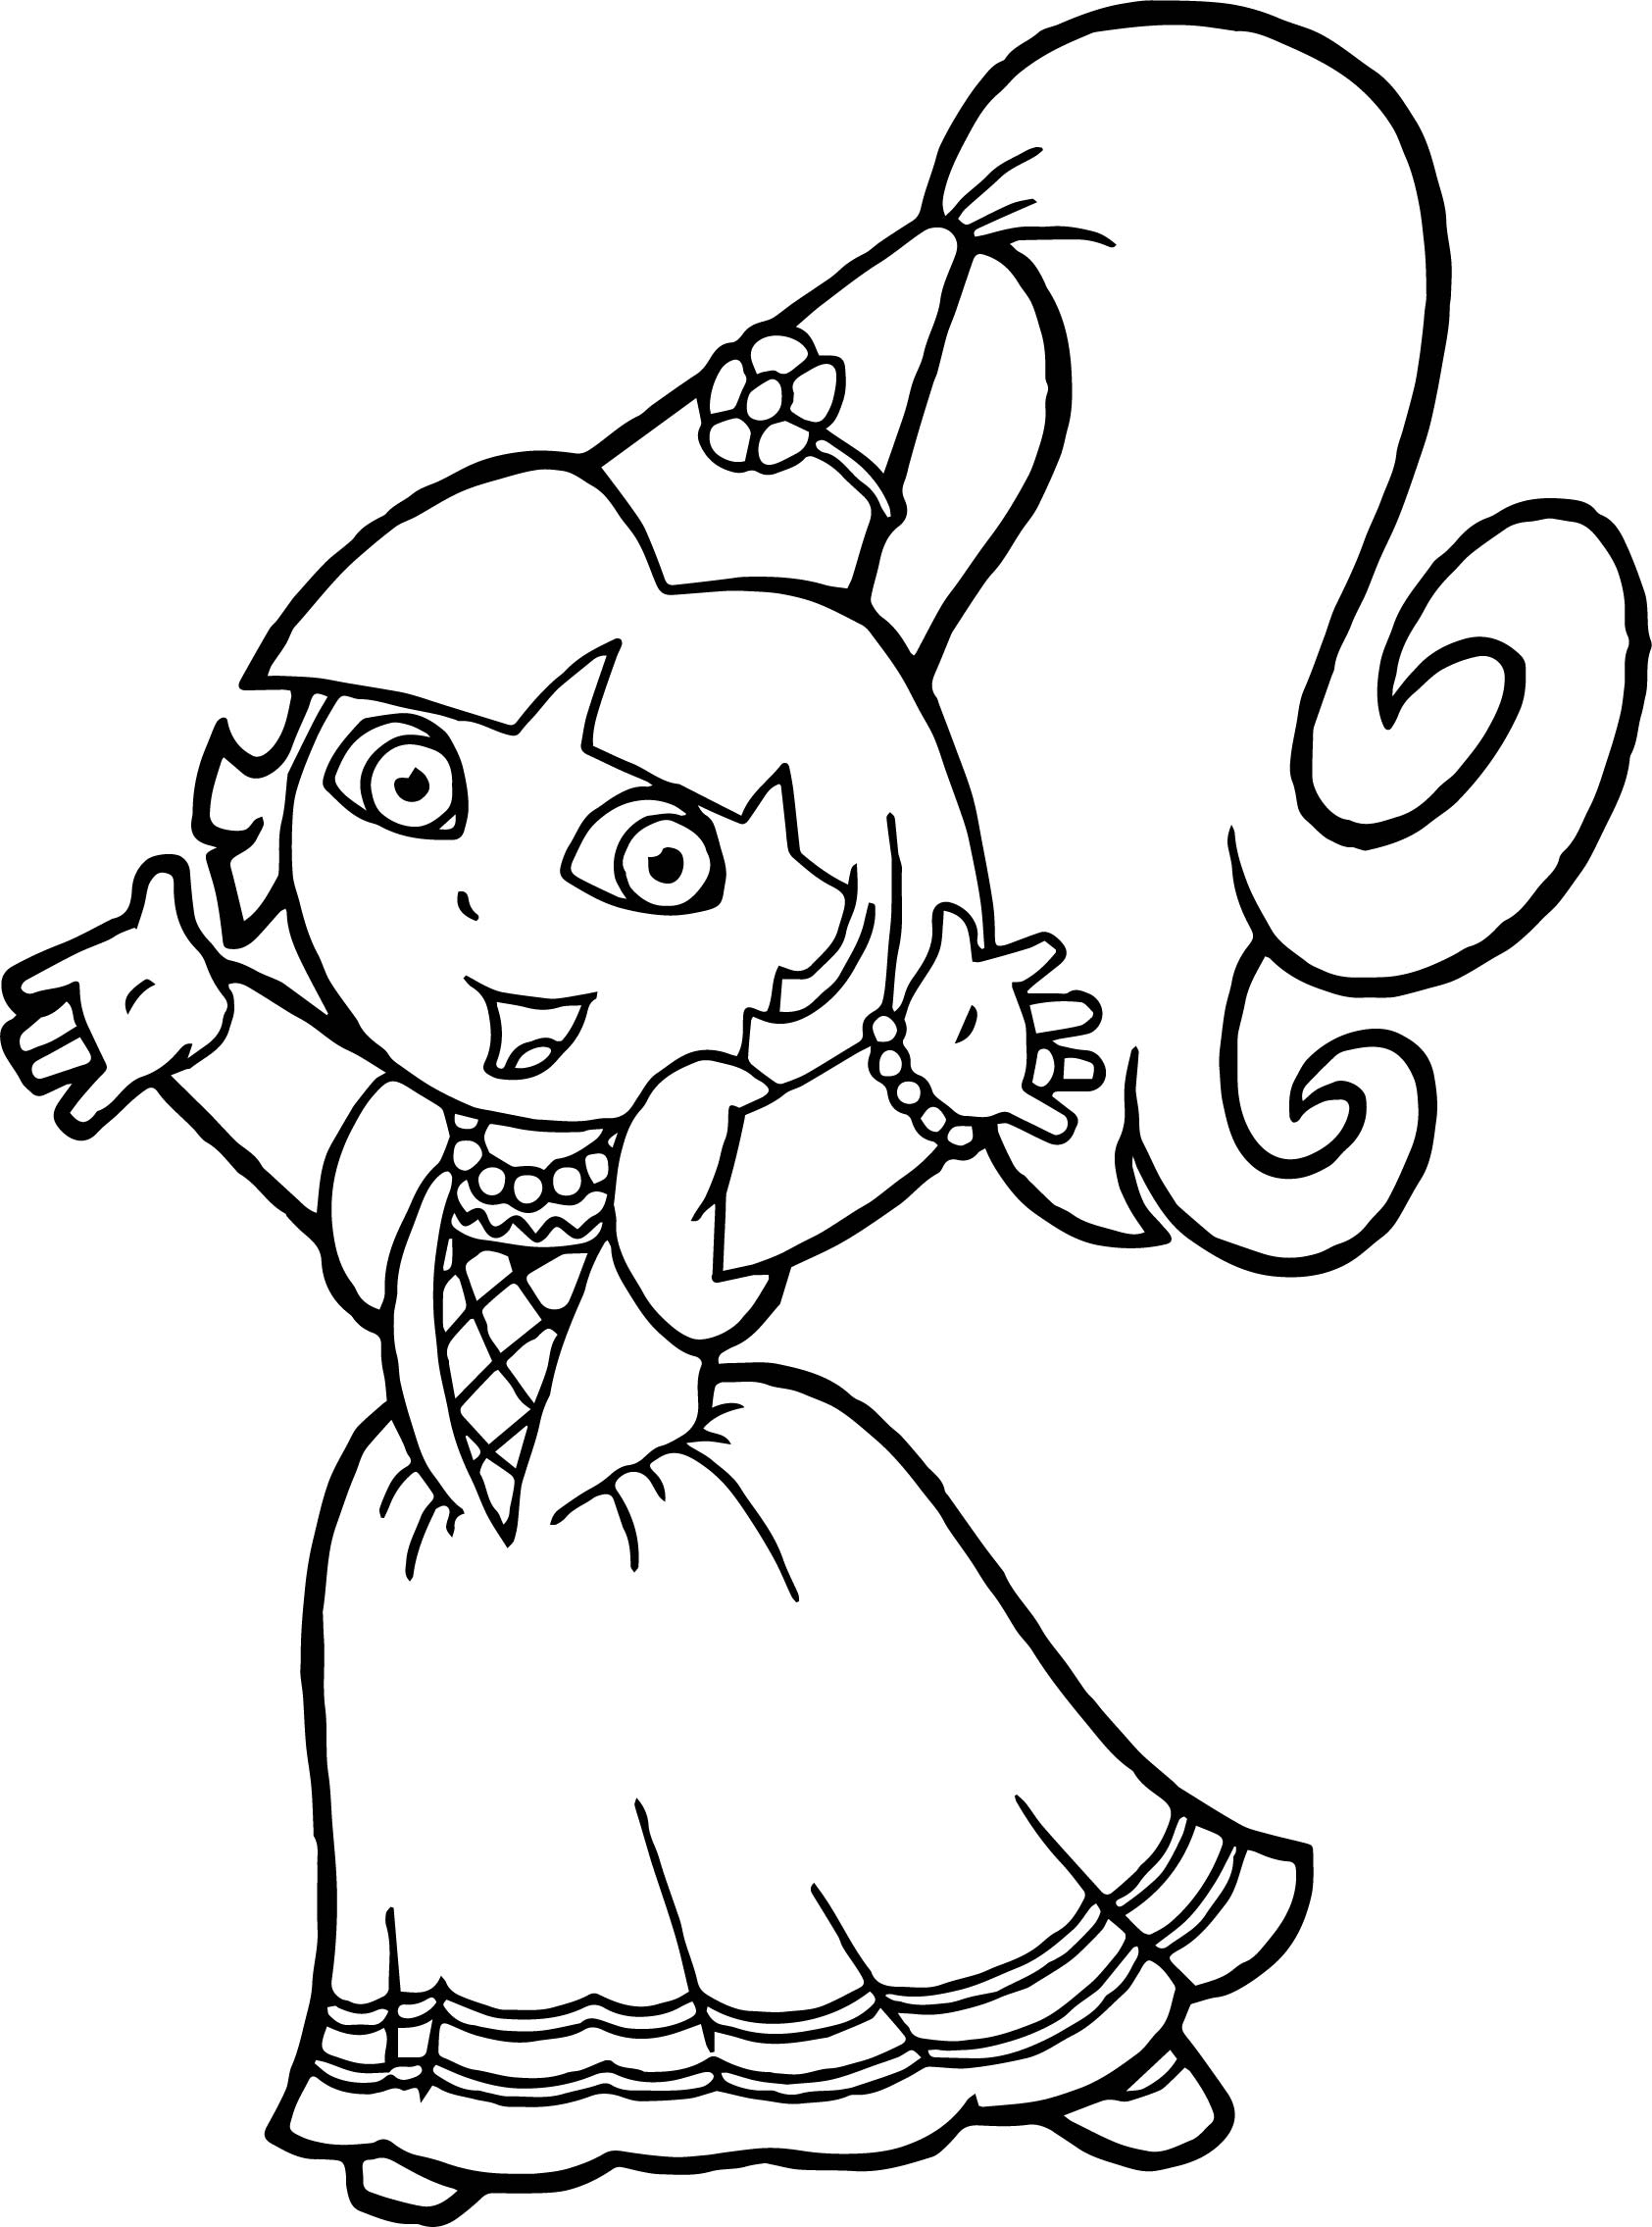 Dora Mermaid Coloring Pages Dora Mermaid Pages Coloring Pages